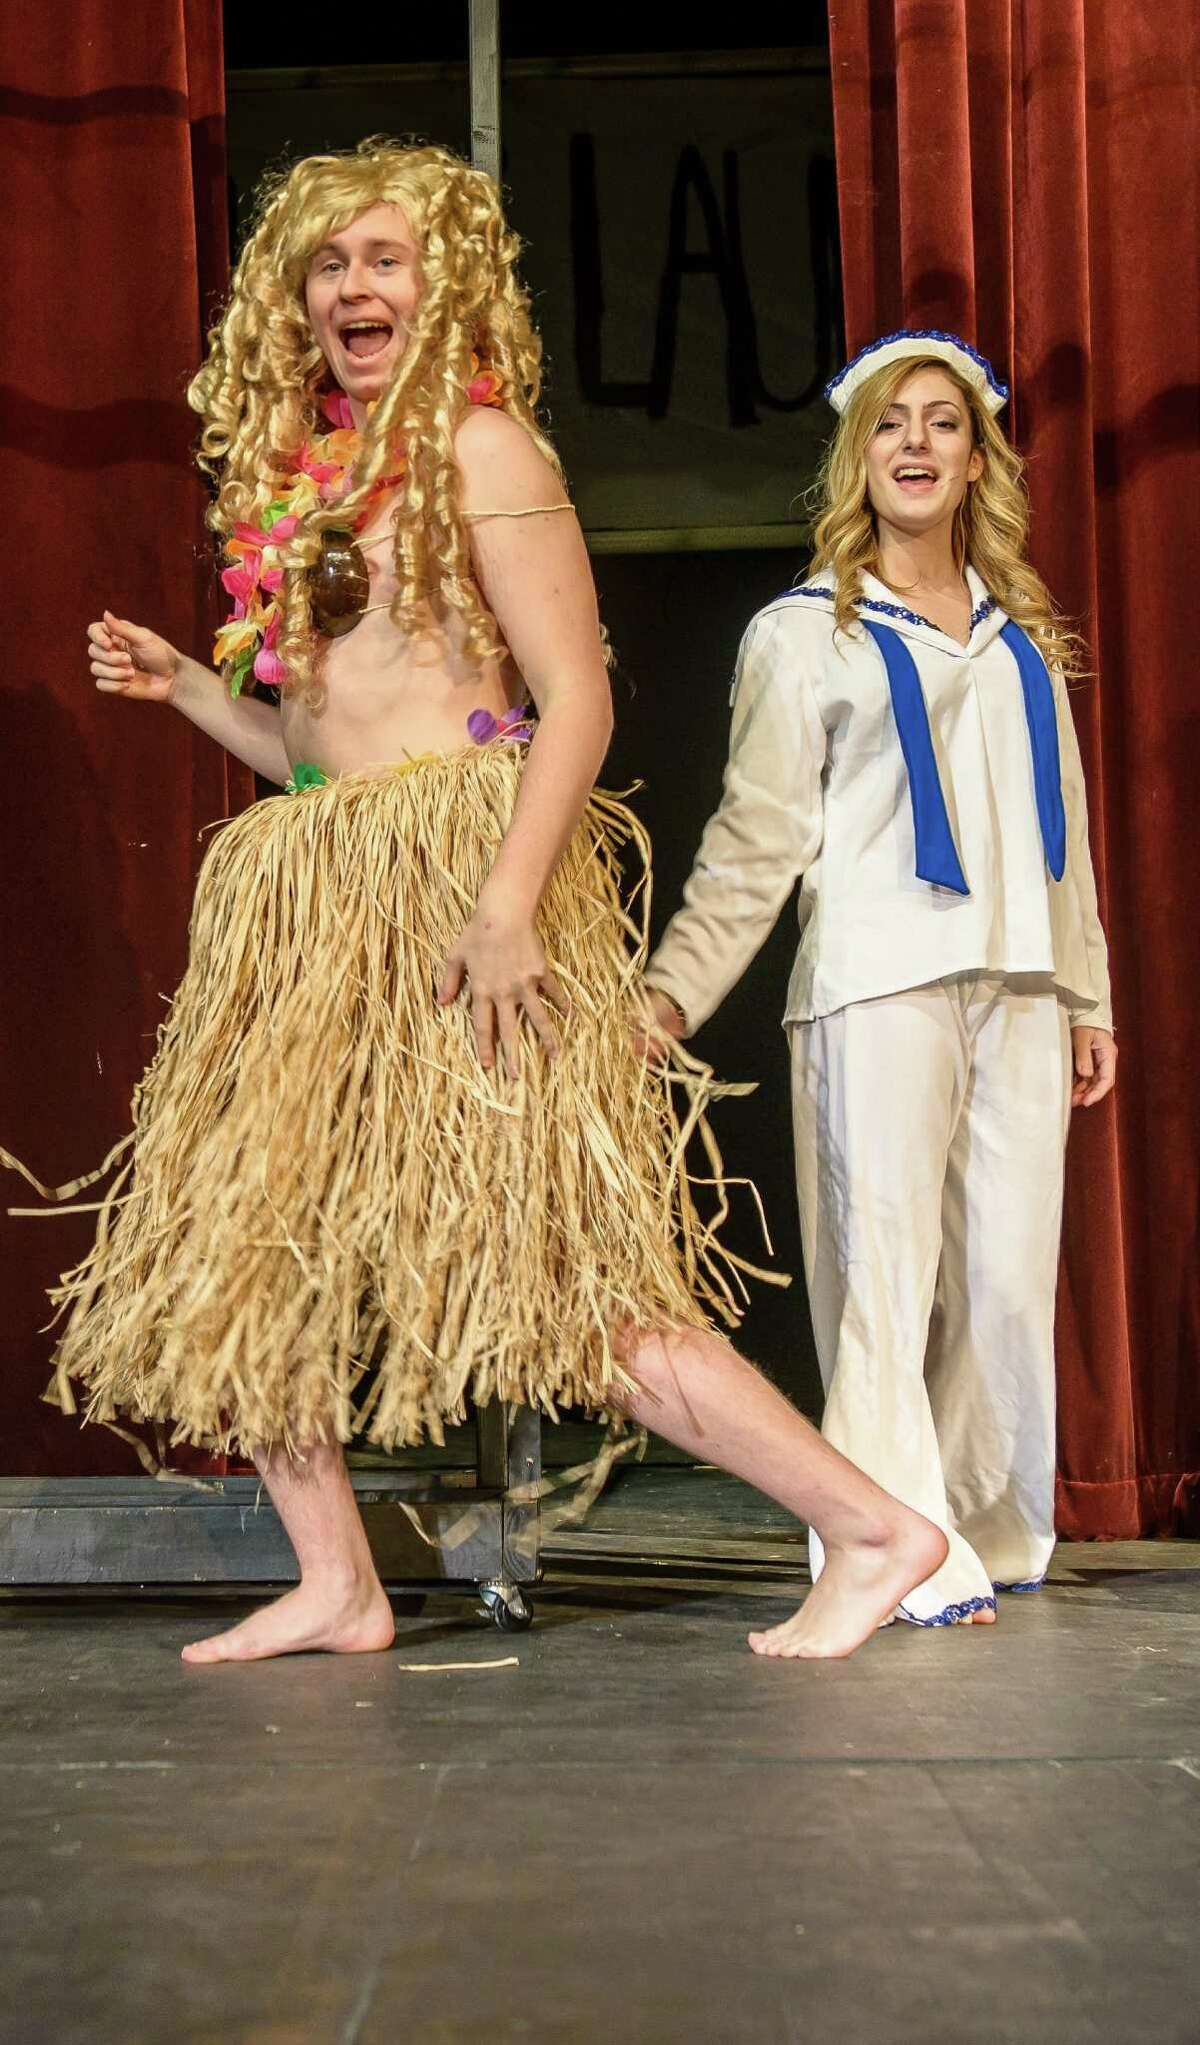 Alvin High students Reese Powling, 17 plays Honey Bun and sings with Megan Tucker, 17 who plays Nellie during rehearsal of the play South Pacific 01/08/15.